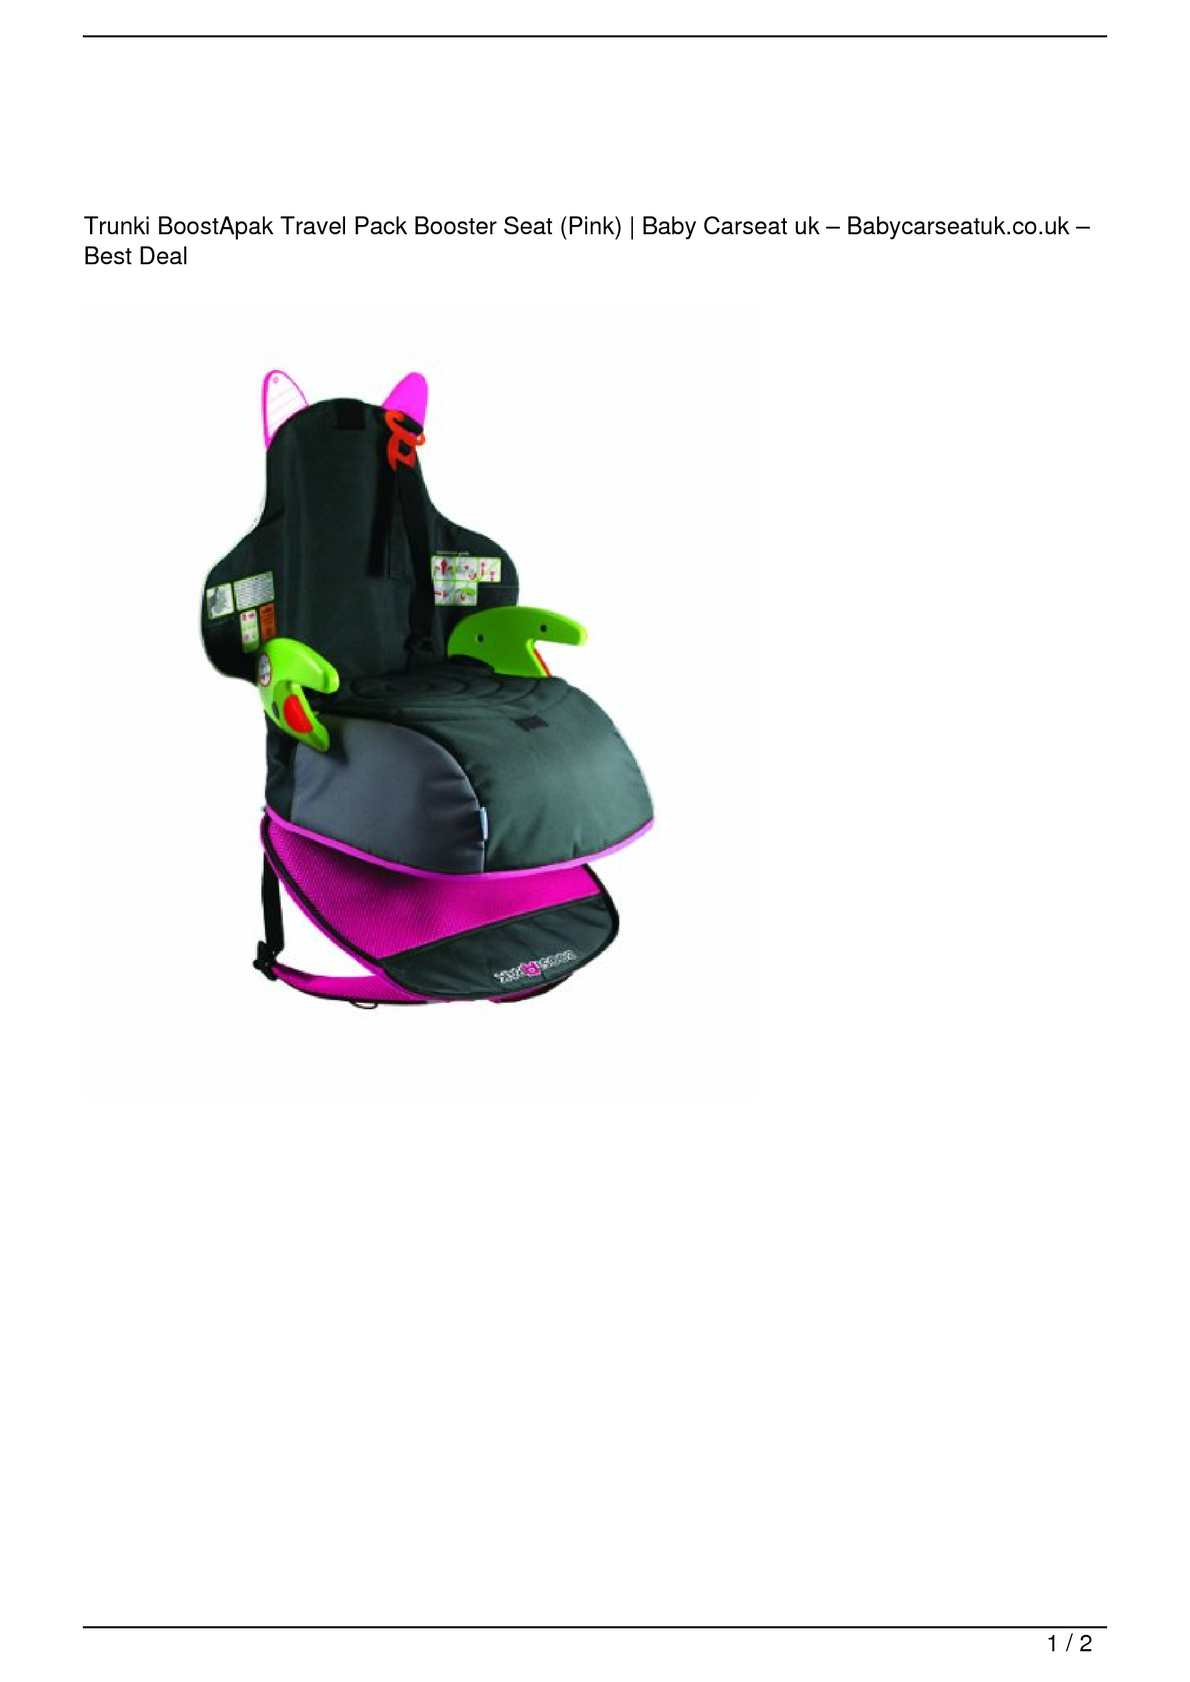 6d76800e25 Calaméo - Trunki BoostApak Travel Pack Booster Seat (Pink) Big SALE